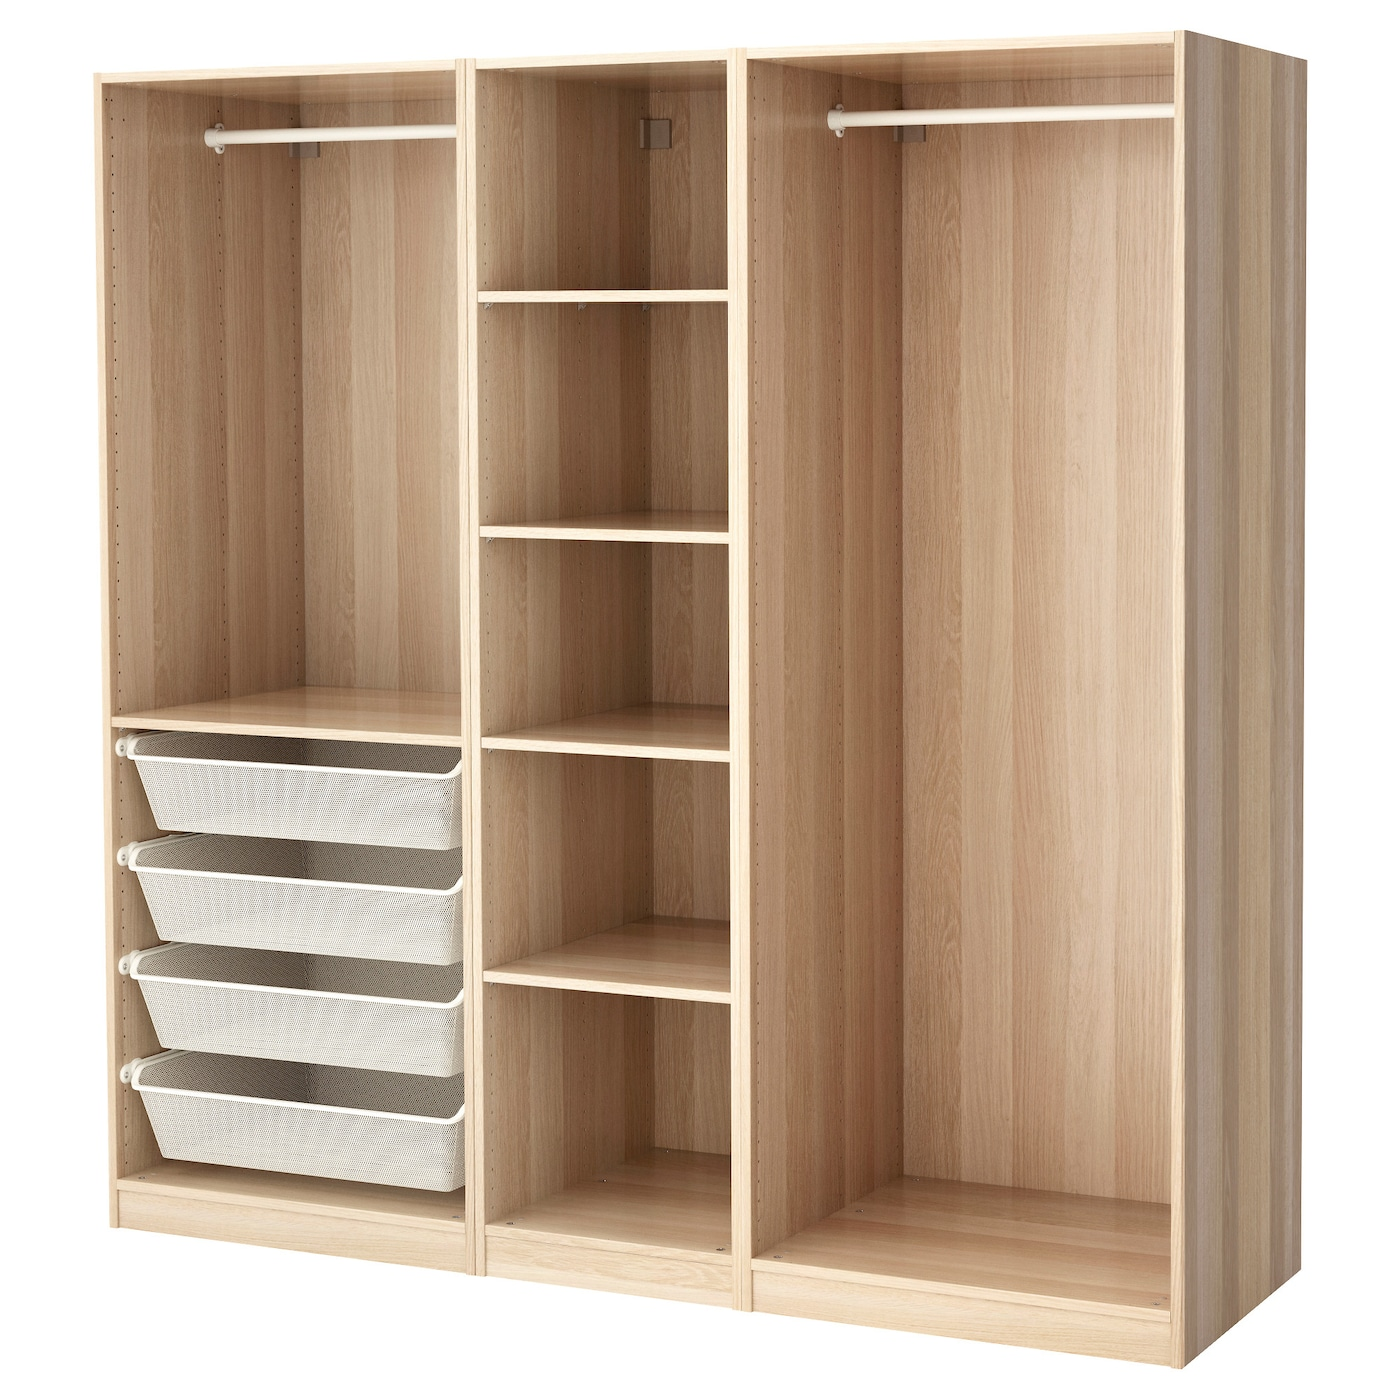 Armoire Couloir Design Of Pax Wardrobe White Stained Oak Effect 200x58x201 Cm Ikea